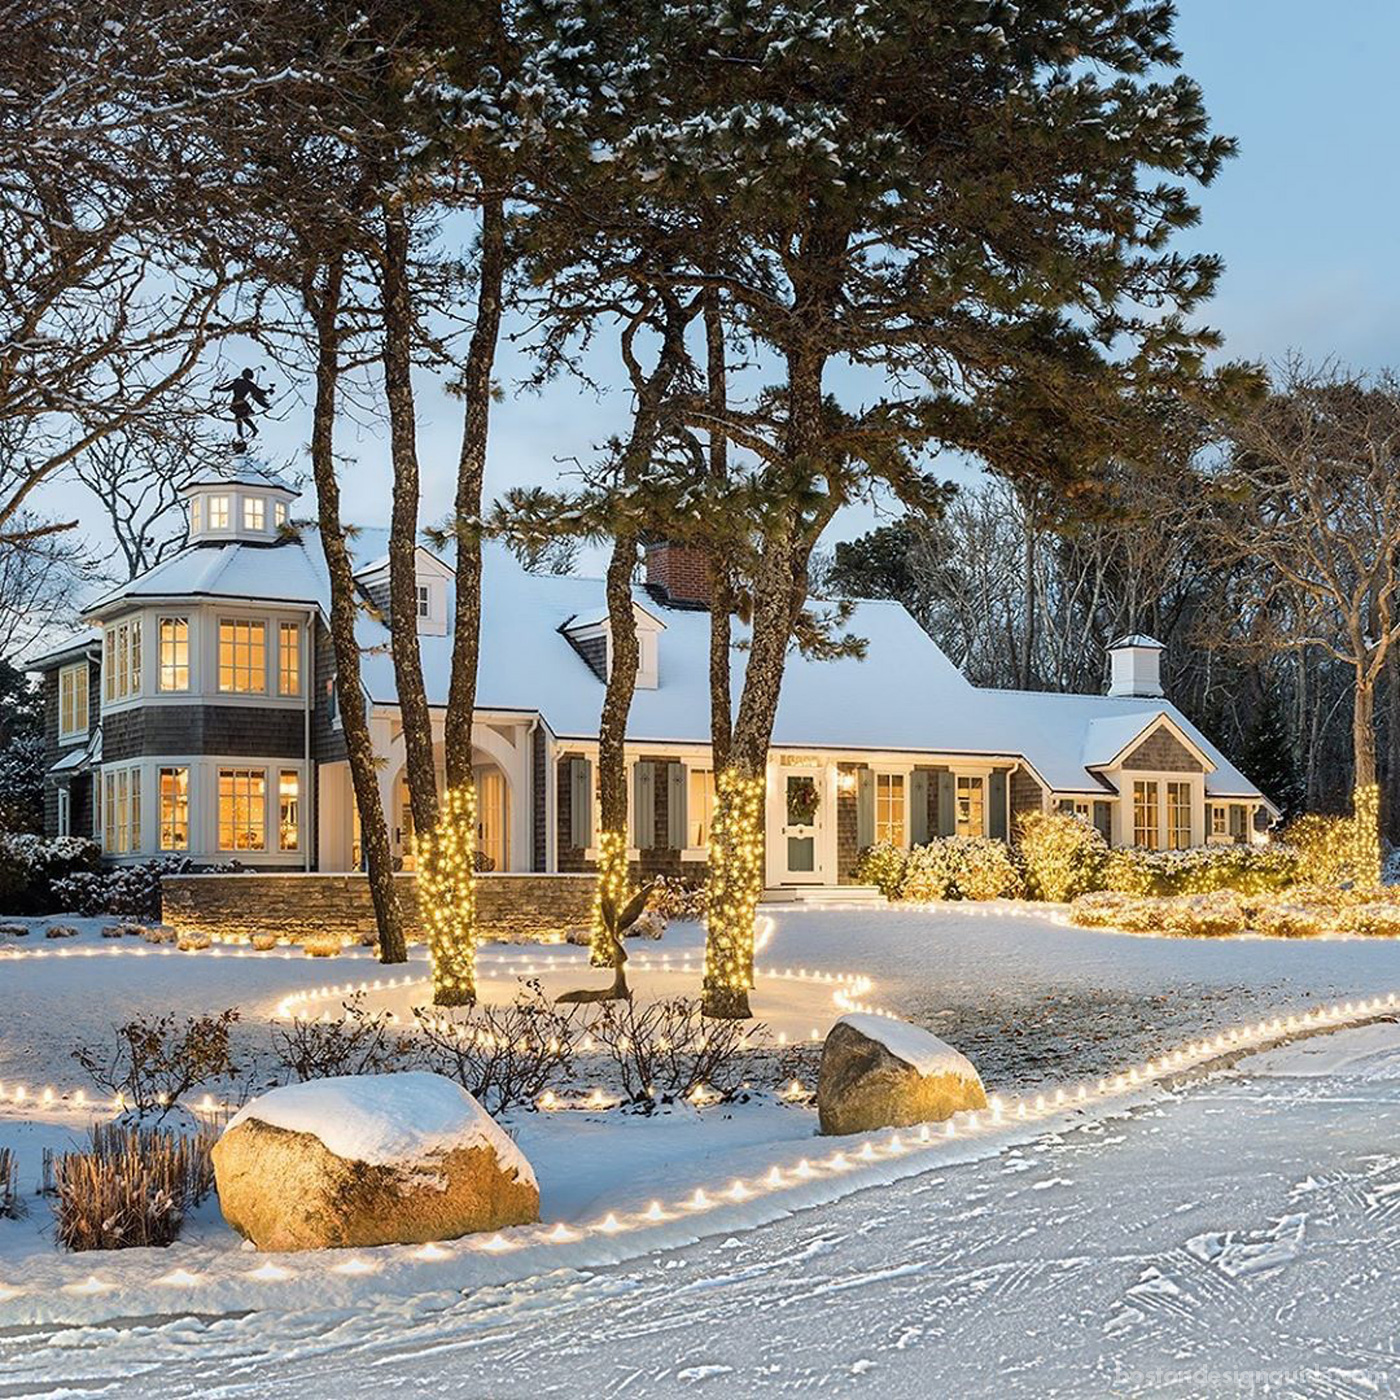 Home dressed for the holidays by Polhemus Savery DaSilva